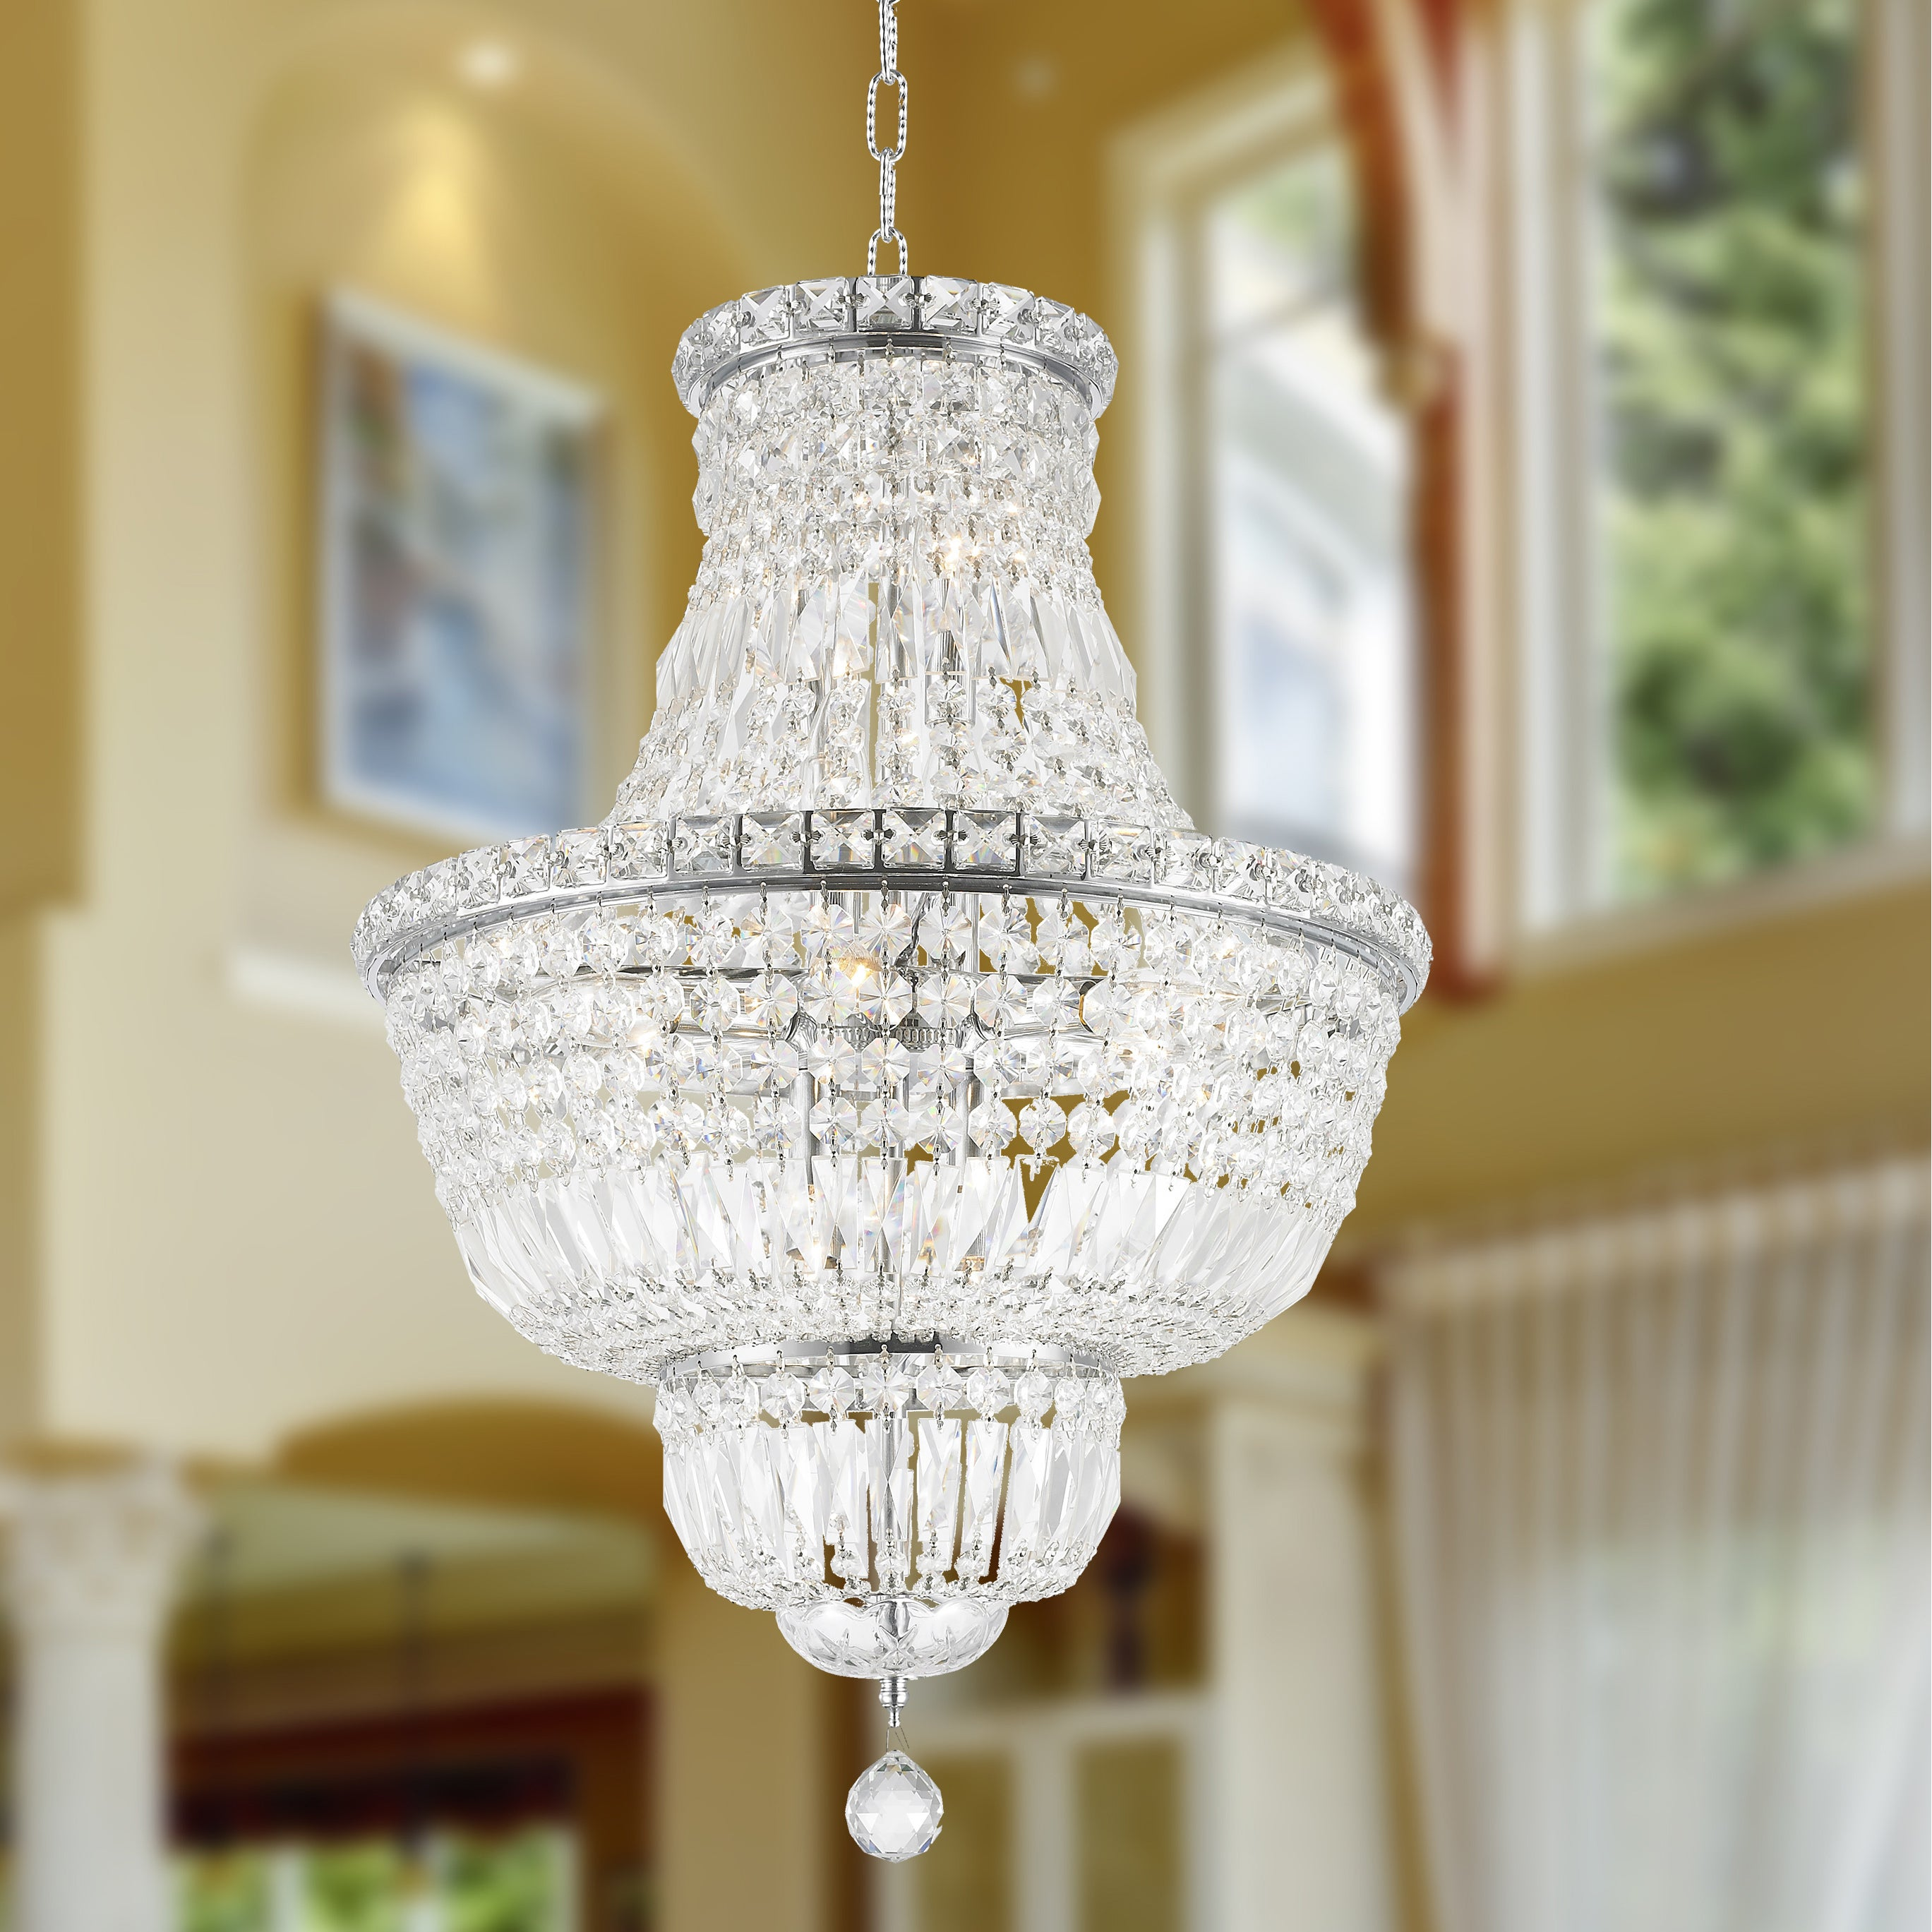 French Empire Collection 12 Light Chrome Finish and Clear Crystal